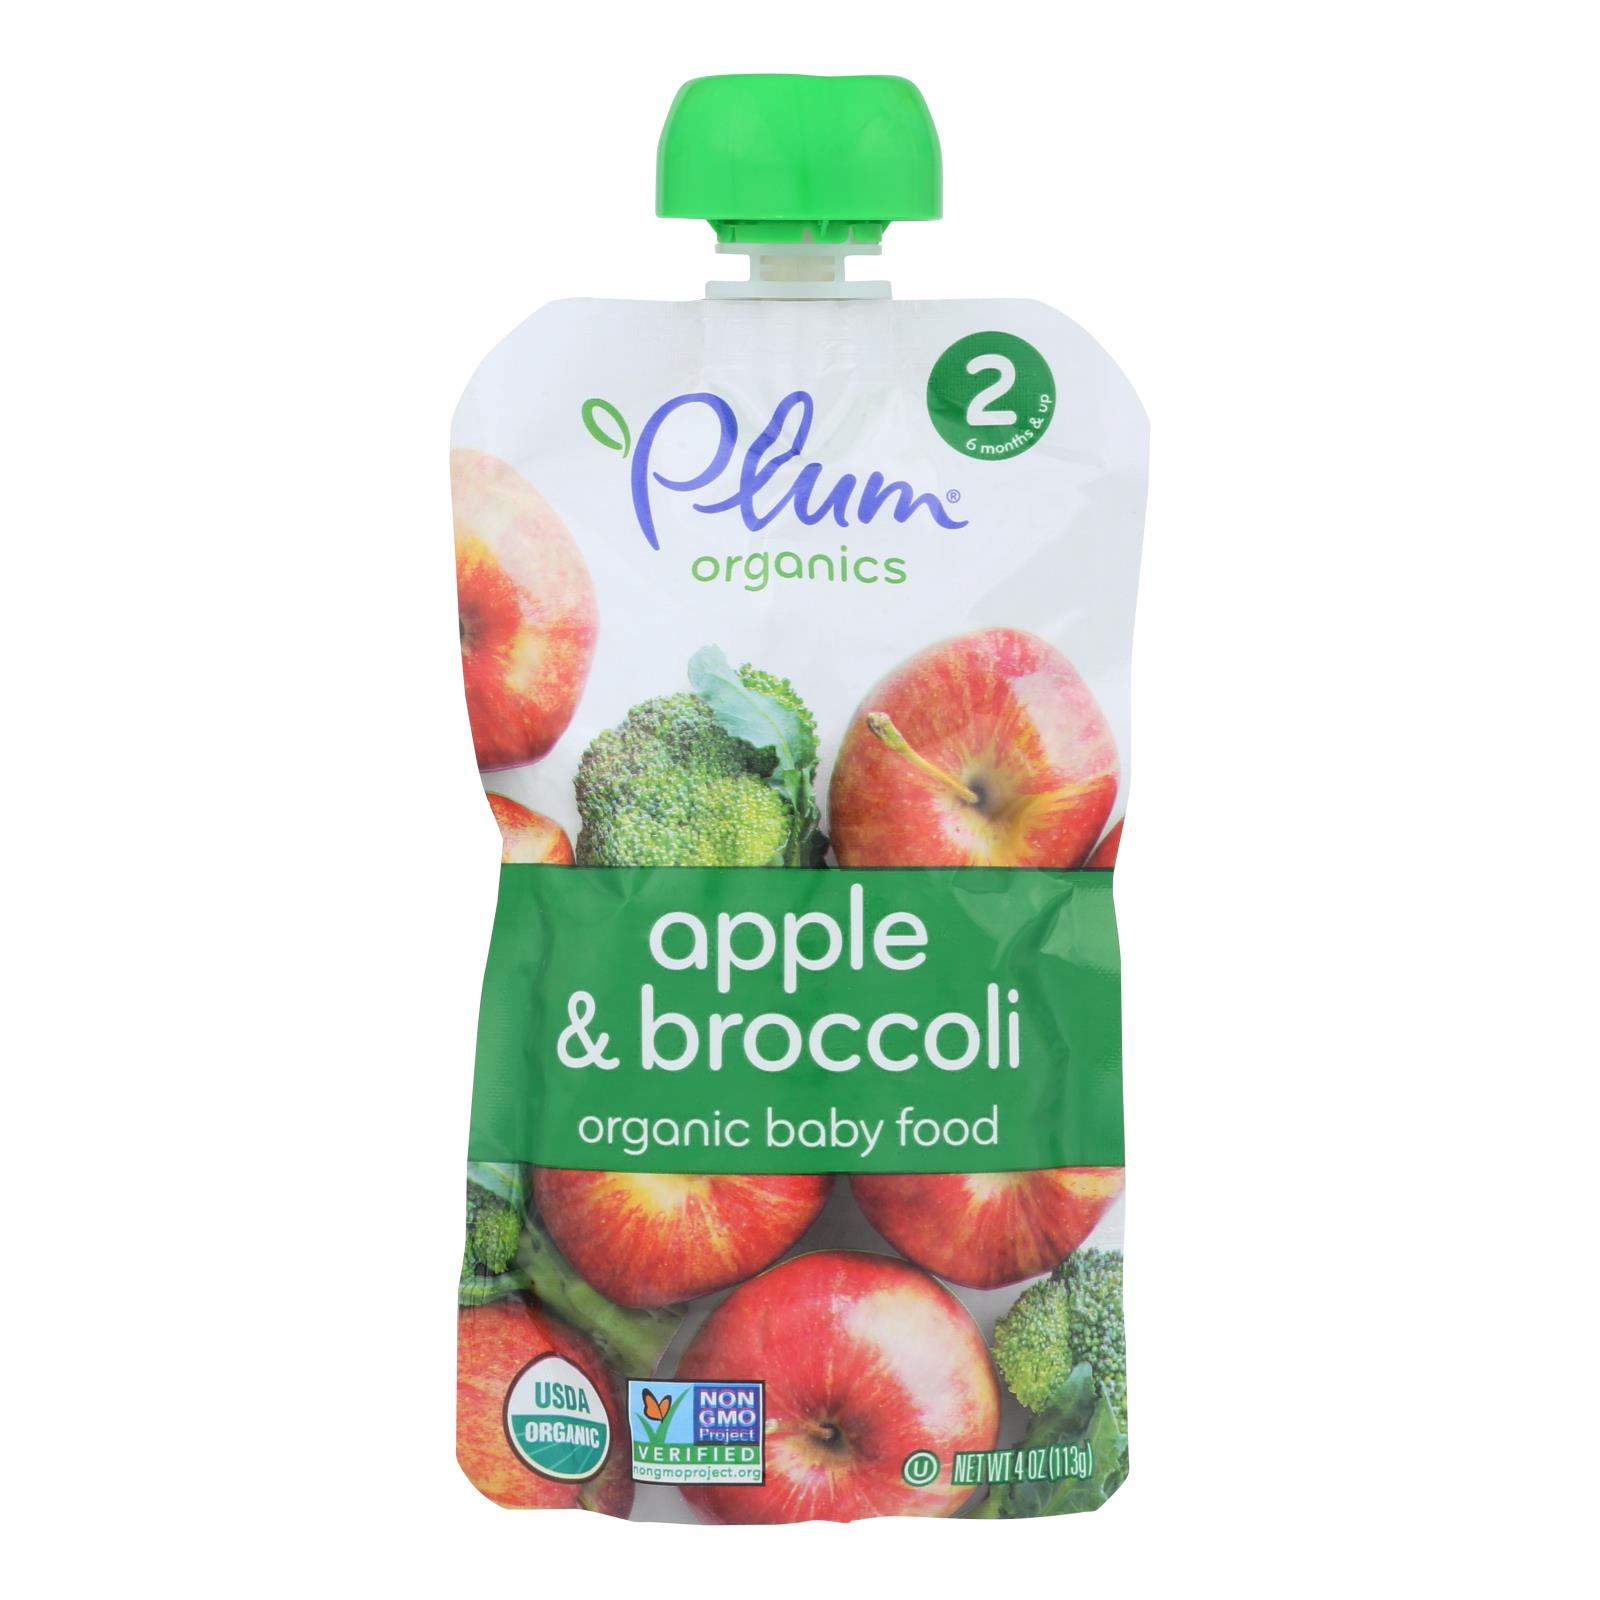 Plum Organics Baby Food - Organic - Broccoli and Apple - Stage 2 - 6 Months and Up - 4 oz - Case of 6